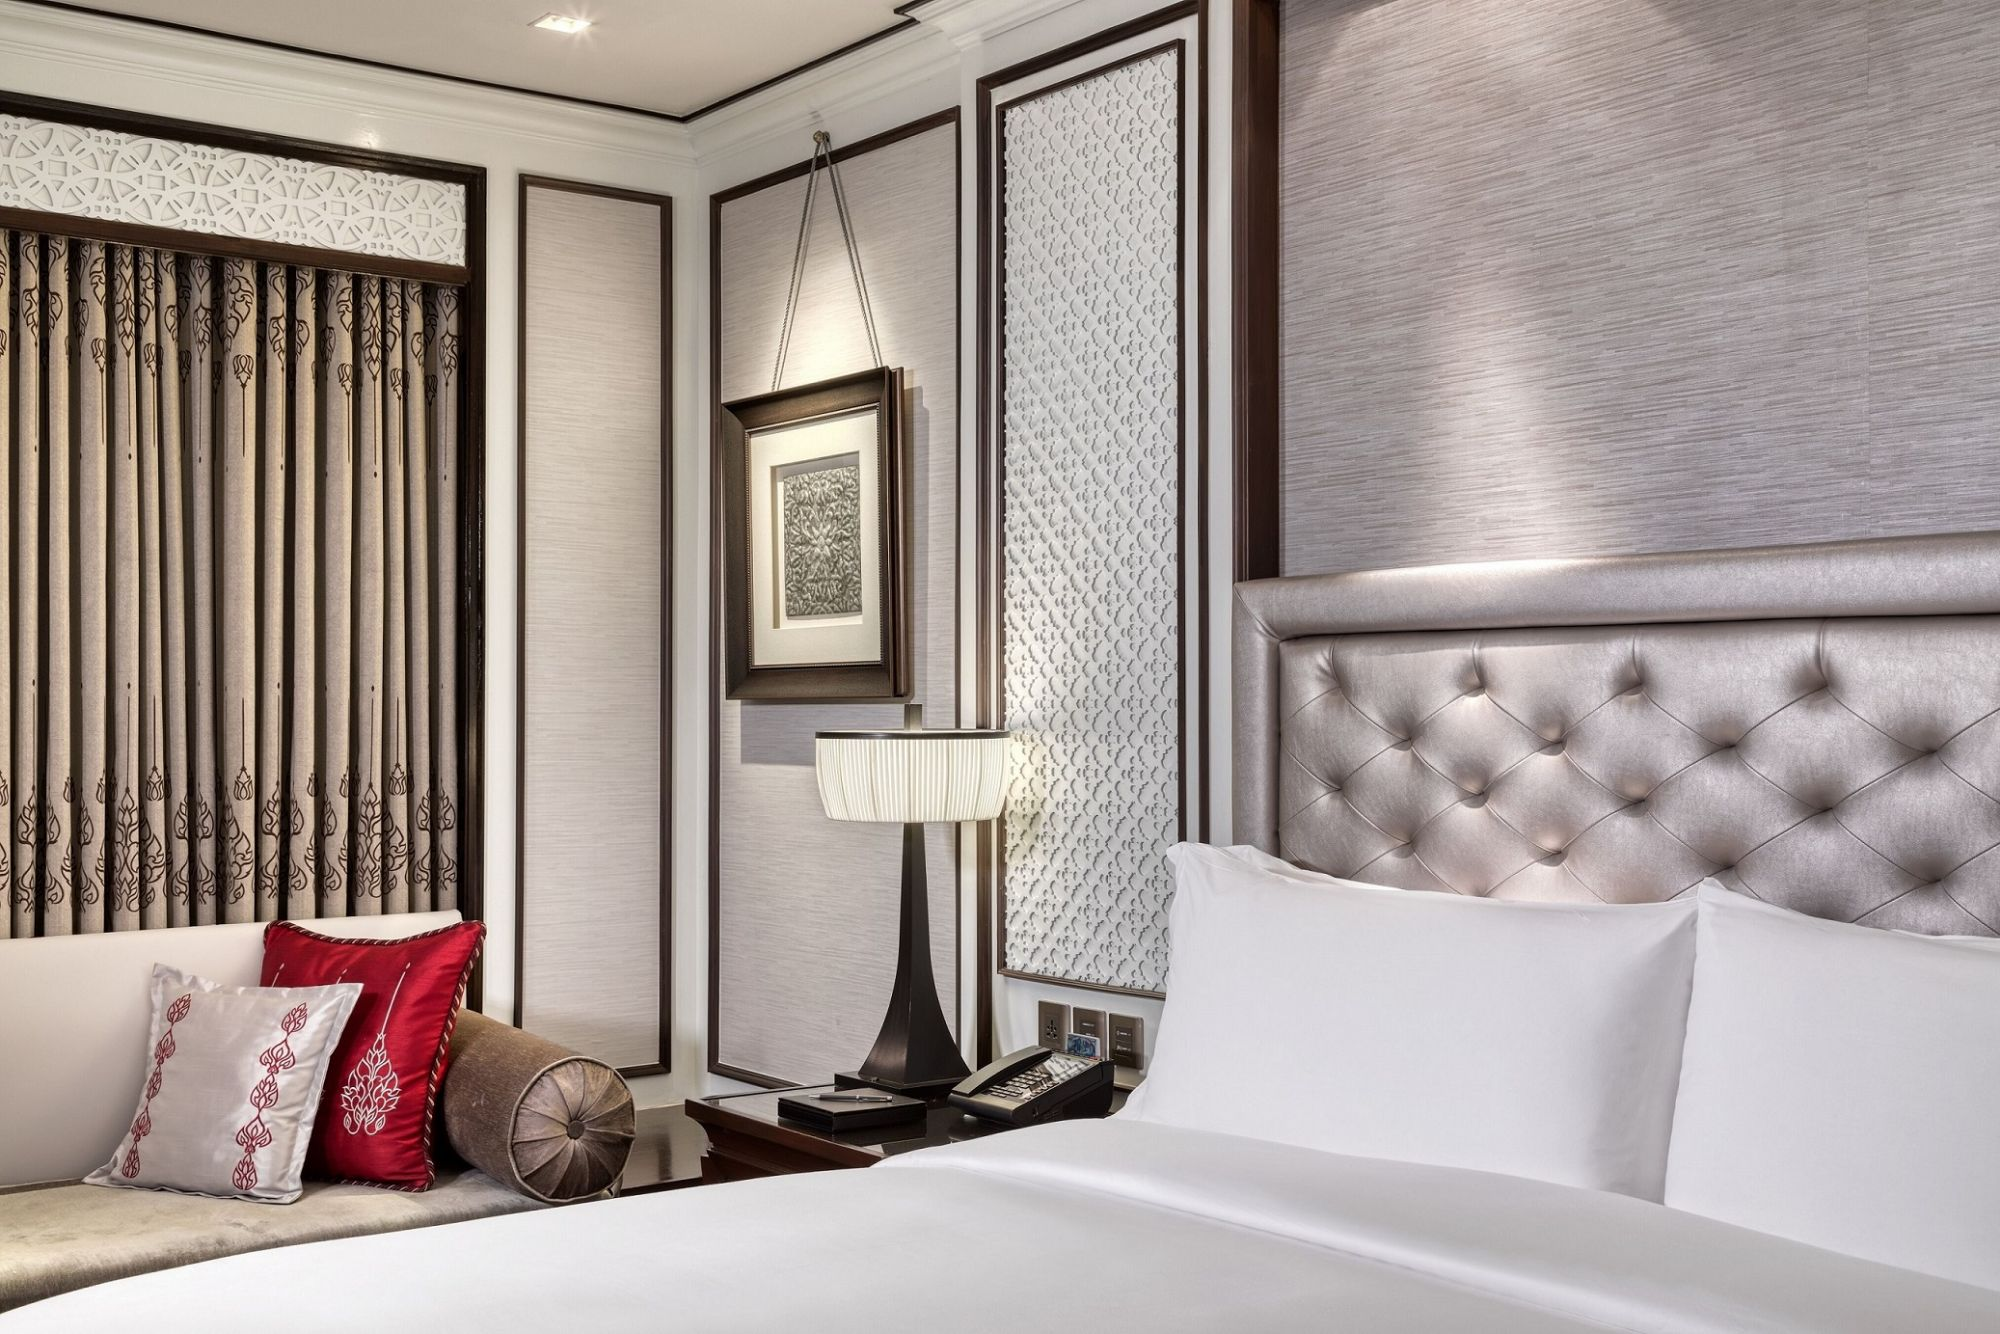 The Athenee Hotel Welcomes You To A Safe Dine'cation